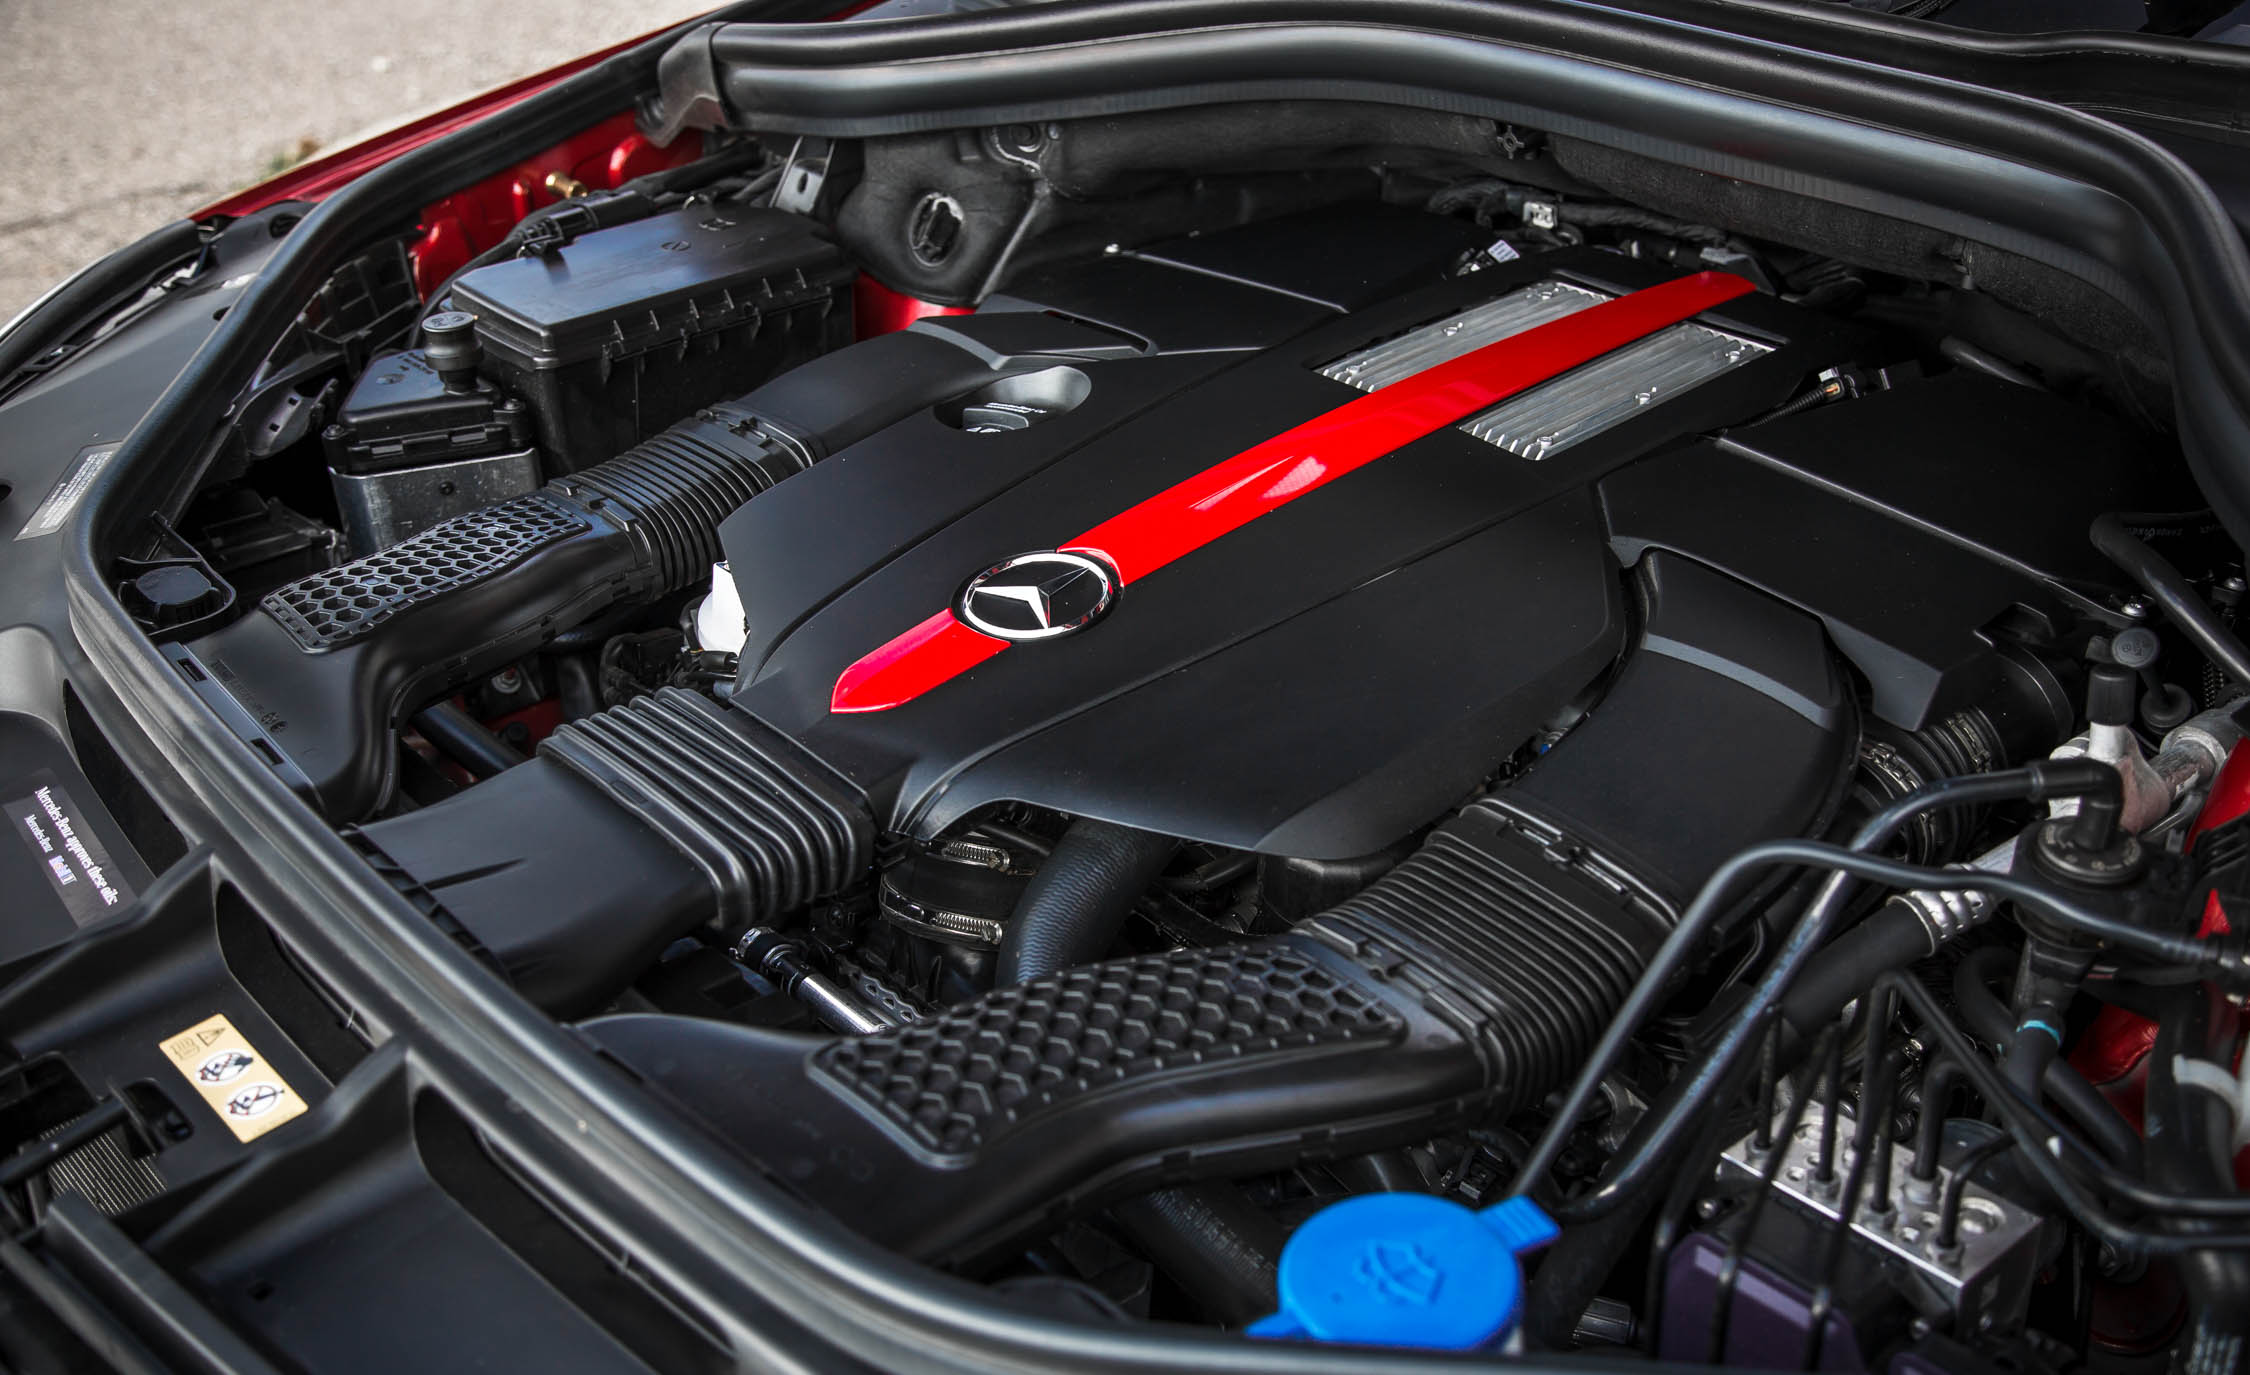 2016 Mercedes-Benz GLE450 AMG Coupe Engine Twin-Turbocharged 3.0-liter V-6